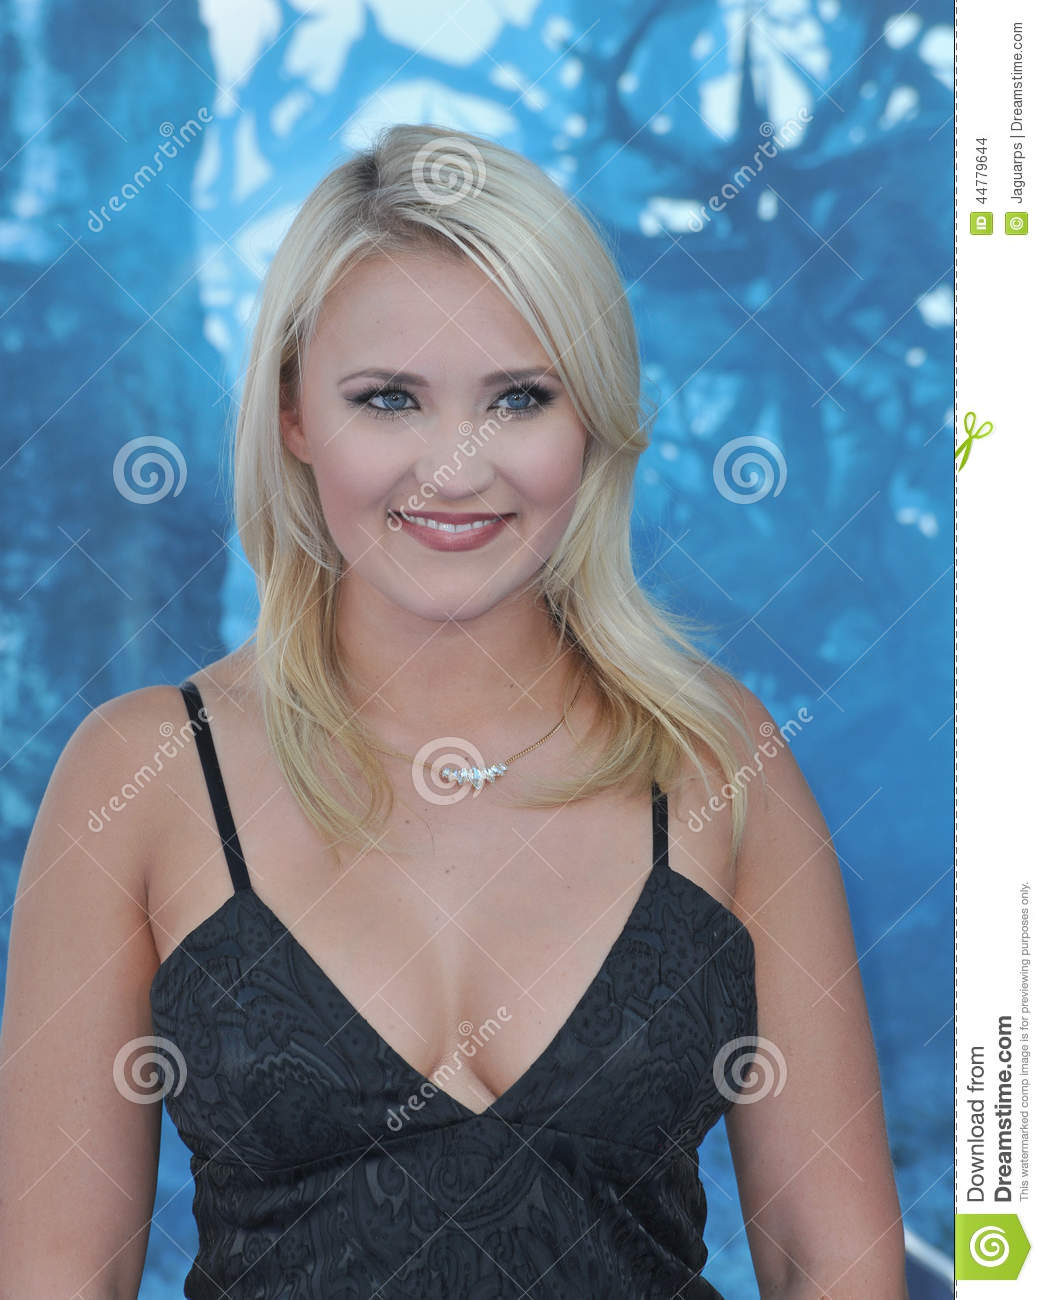 emily osment filmsemily osment all the way up, emily osment let's be friends, emily osment lovesick, emily osment you are the only one, emily osment 2017, emily osment once upon a dream, emily osment miley cyrus, emily osment hq, emily osment site, emily osment movies, emily osment gif tumblr, emily osment and mitchel musso, emily osment films, emily osment chords, emily osment let's be friends mp3, emily osment gif, emily osment i don't think about it, emily osment politics, emily osment ft mitchel musso, emily osment twitter